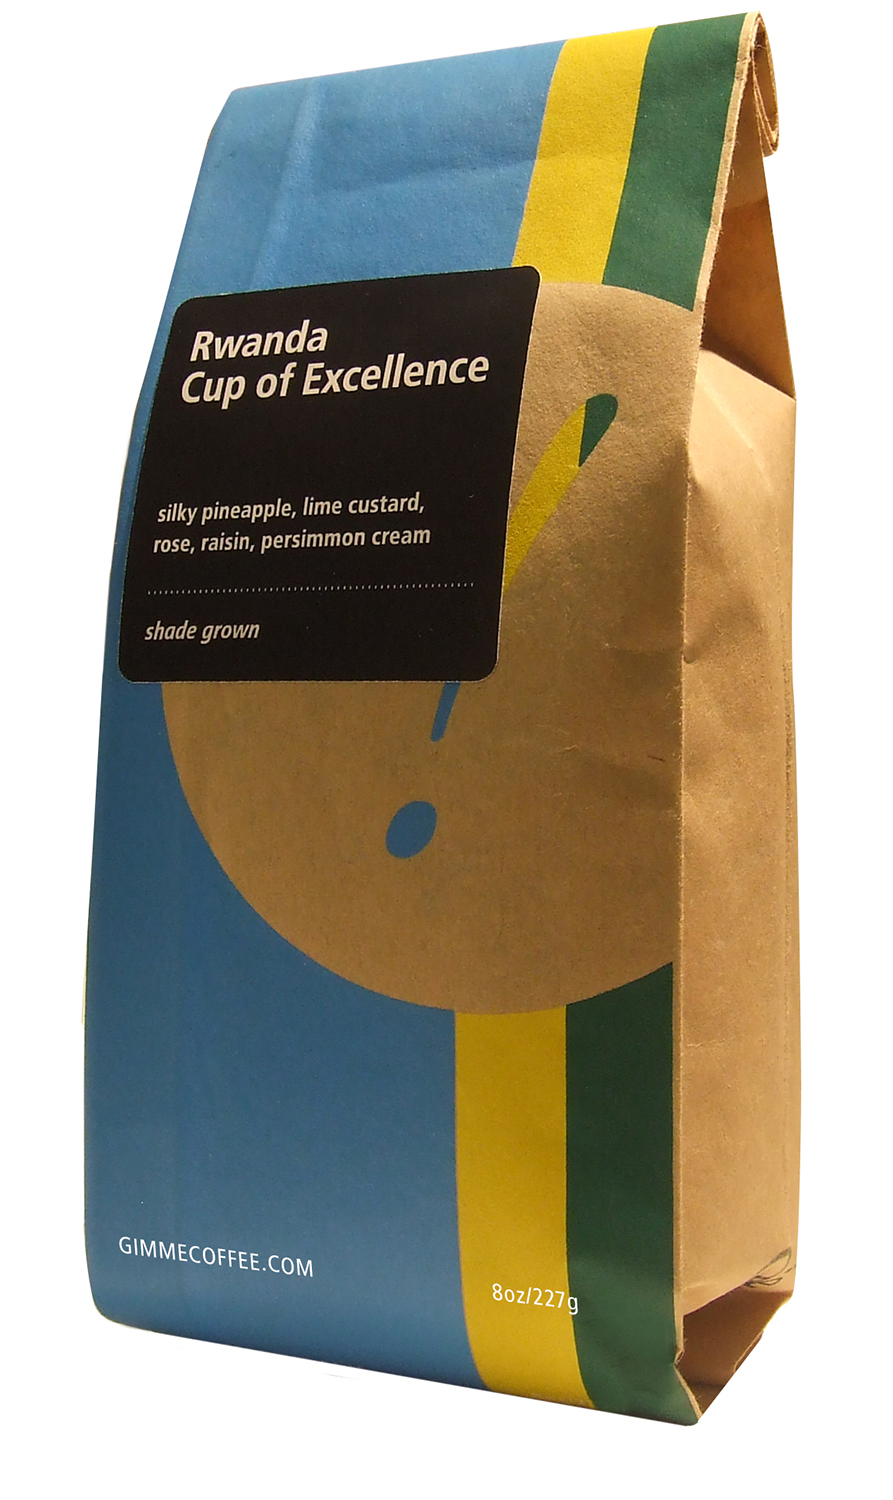 Rwanda Cup of Excellence